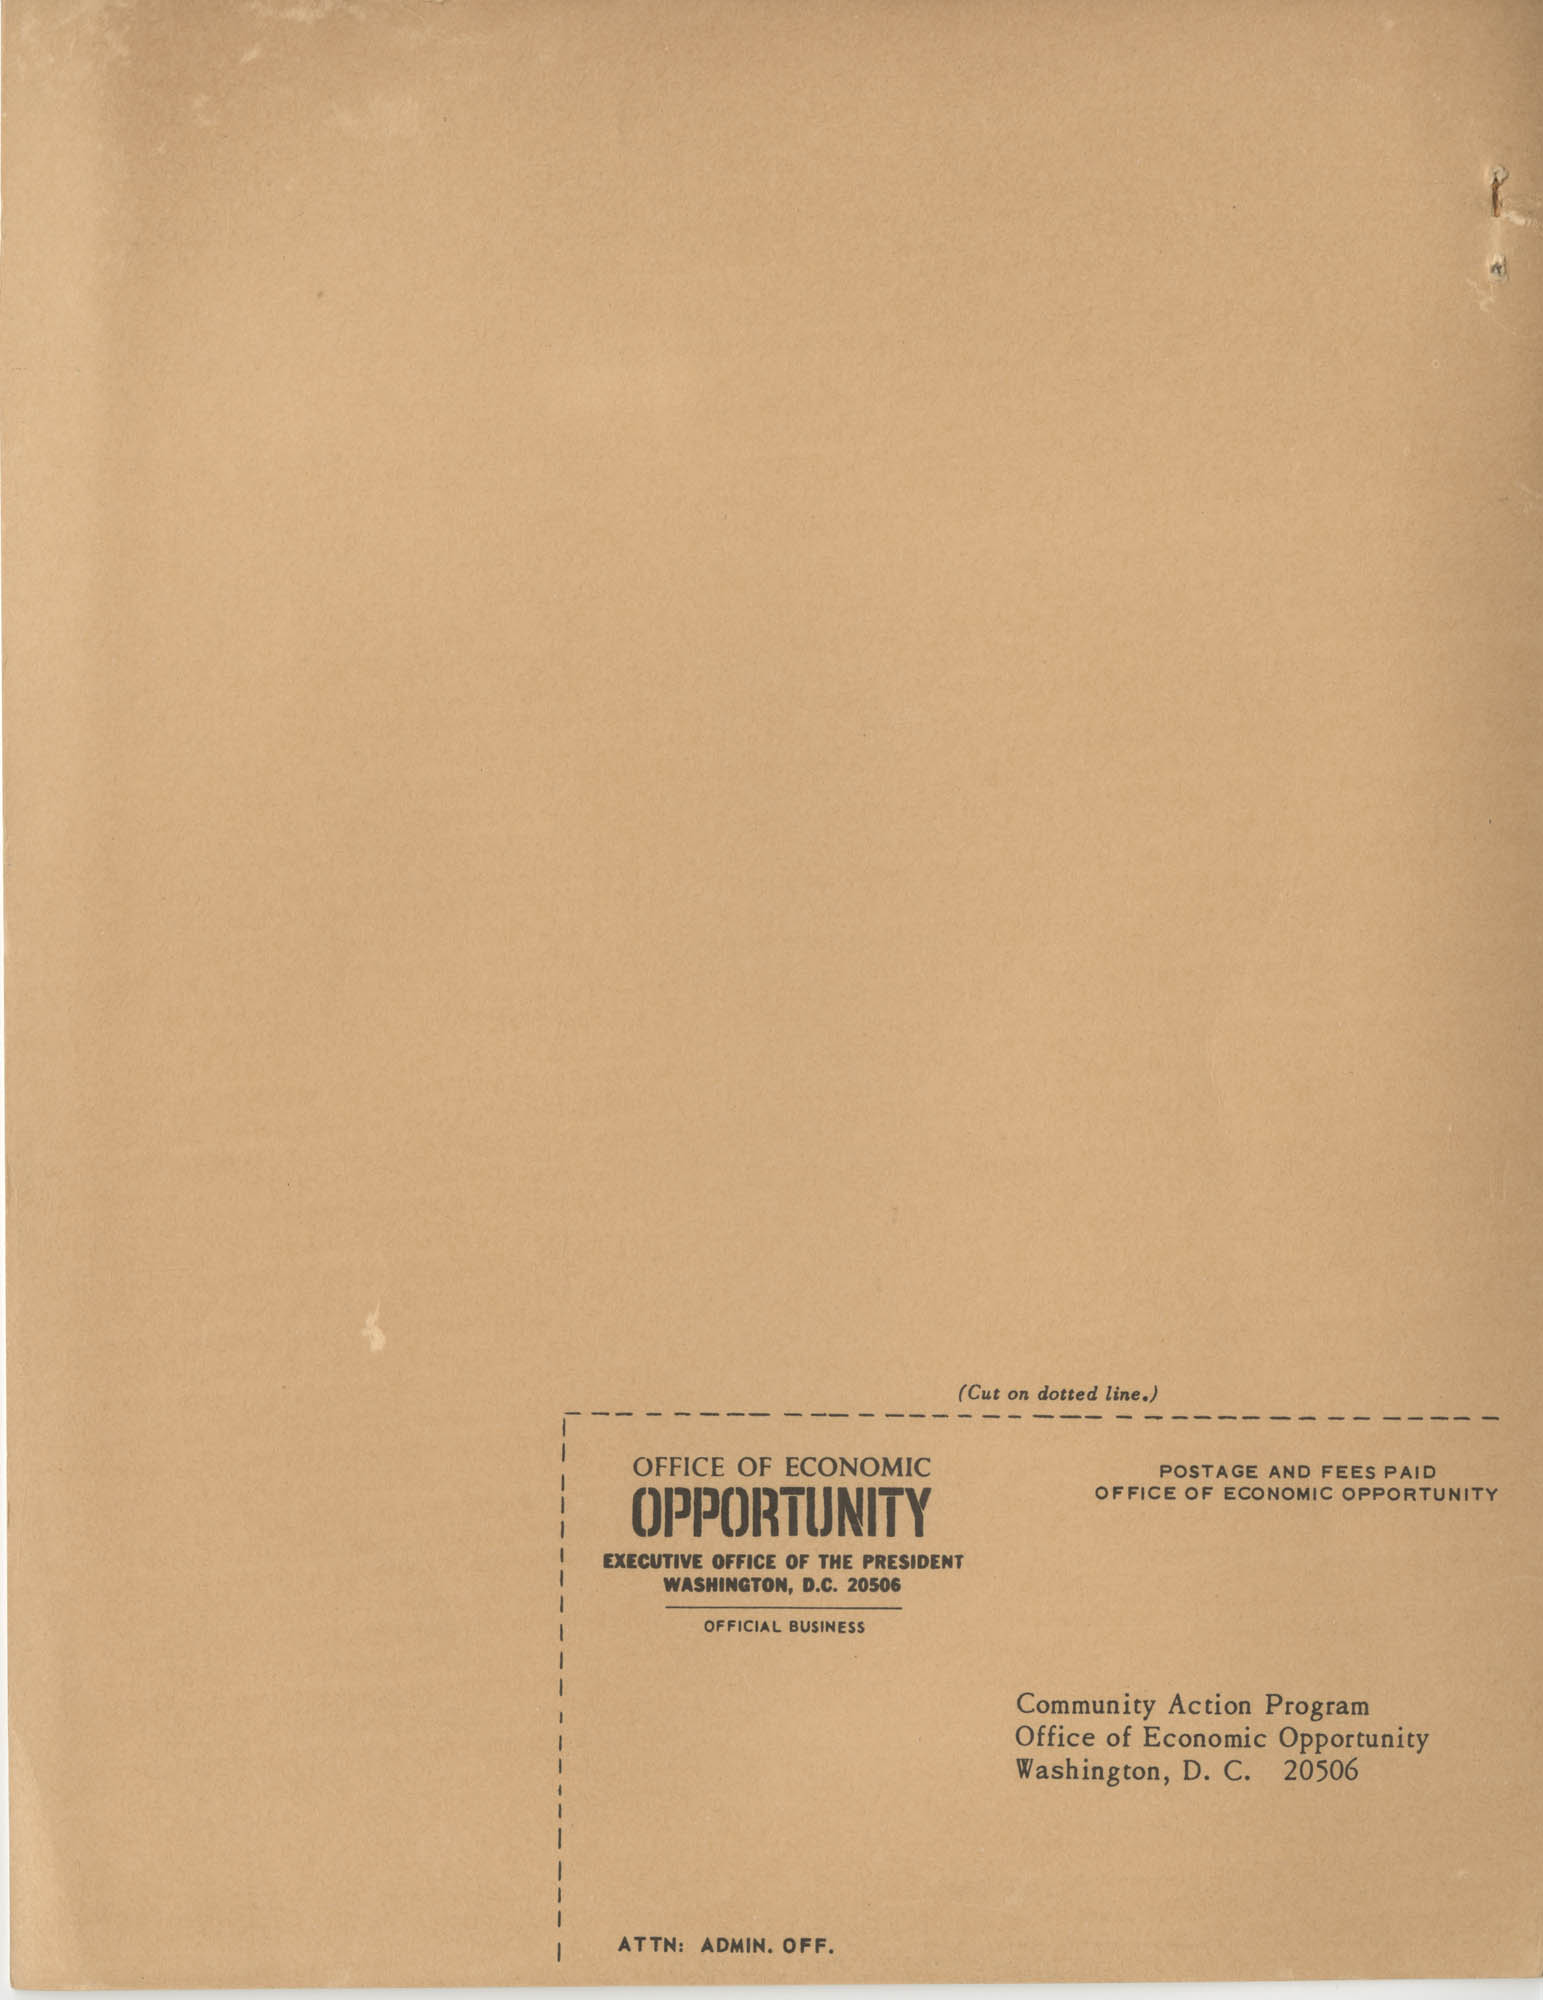 Community Action Programs Directory, June 15, 1966, Back Cover Exterior